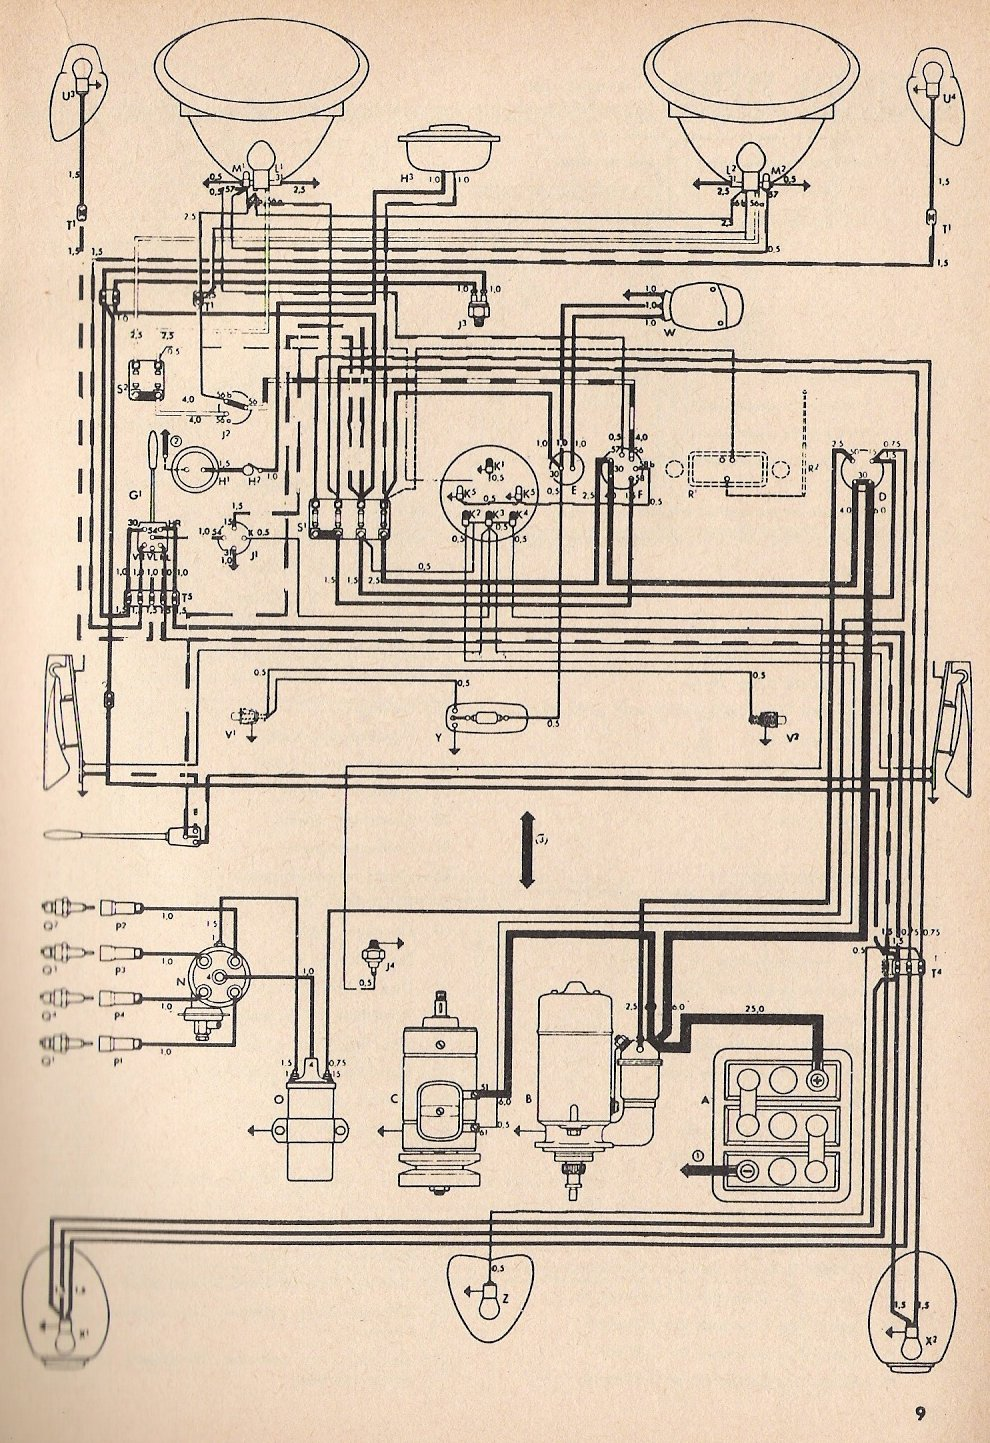 bug_toaug55 1955 beetle wiring diagram thegoldenbug com beetle wiring diagram to fix a/c fan at n-0.co